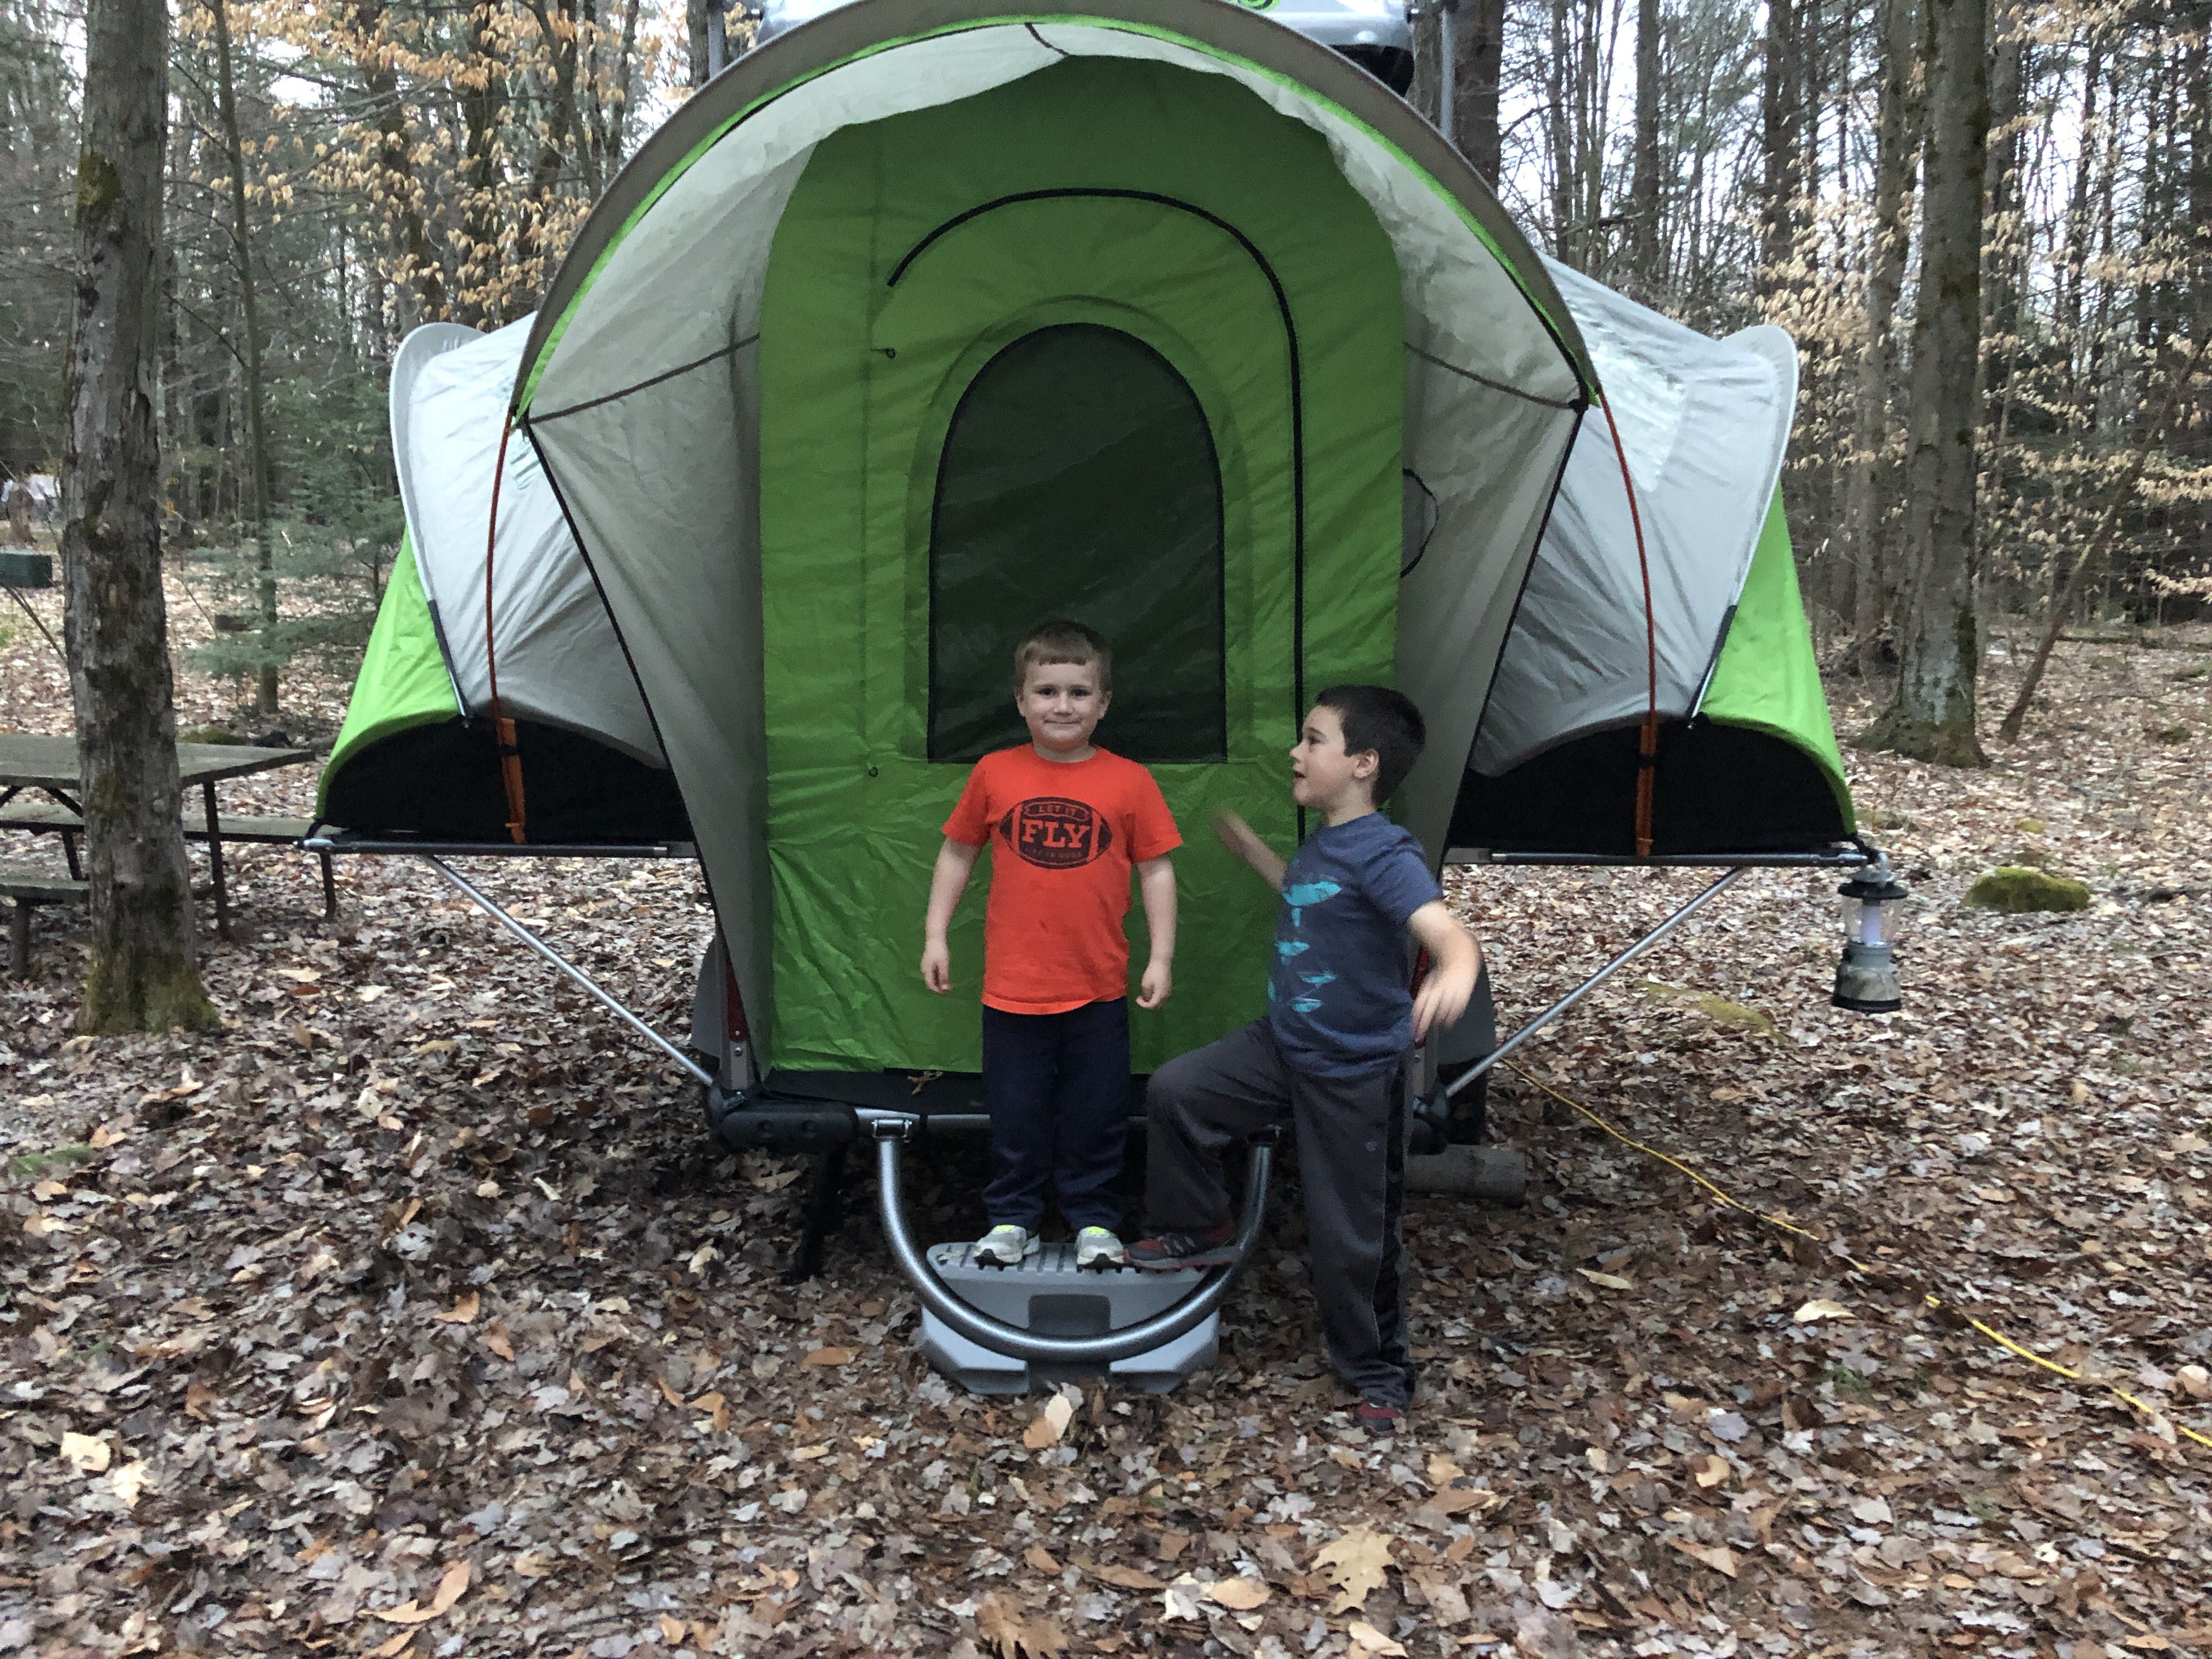 2 Boys stand in front of green unconventional tent structure in the woods.